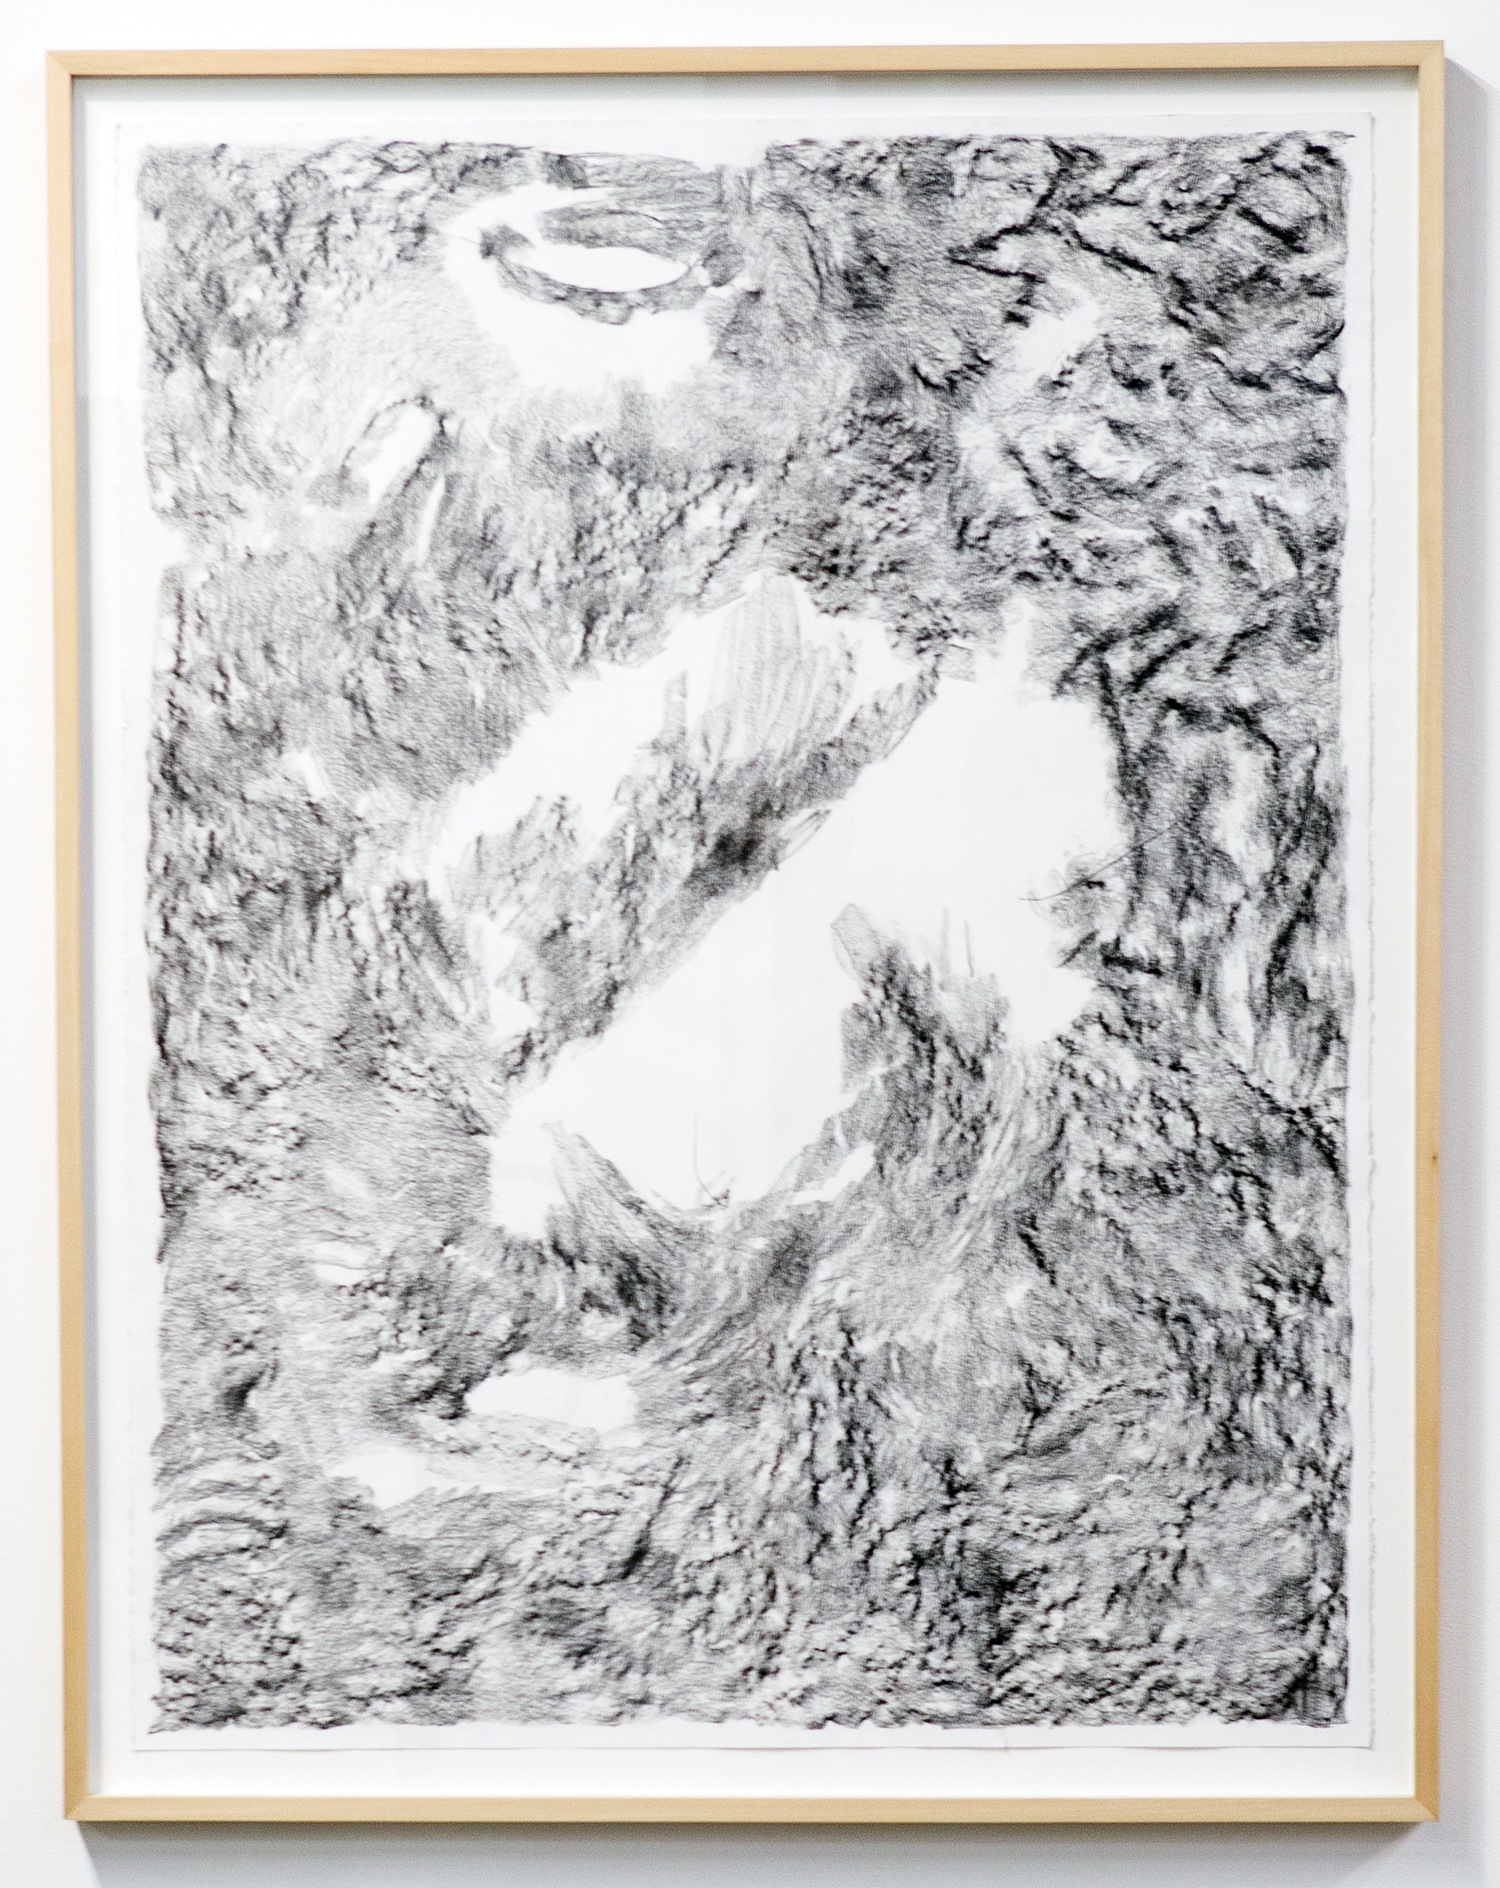 MLSL_01_ElysianPark  , 2015  Conté on rag paper  Paper 49.75 x 38.5 in (126.37 x 97.79 cm) Framed 52.25 x 42.5 in (132.72 x 107.95 cm)